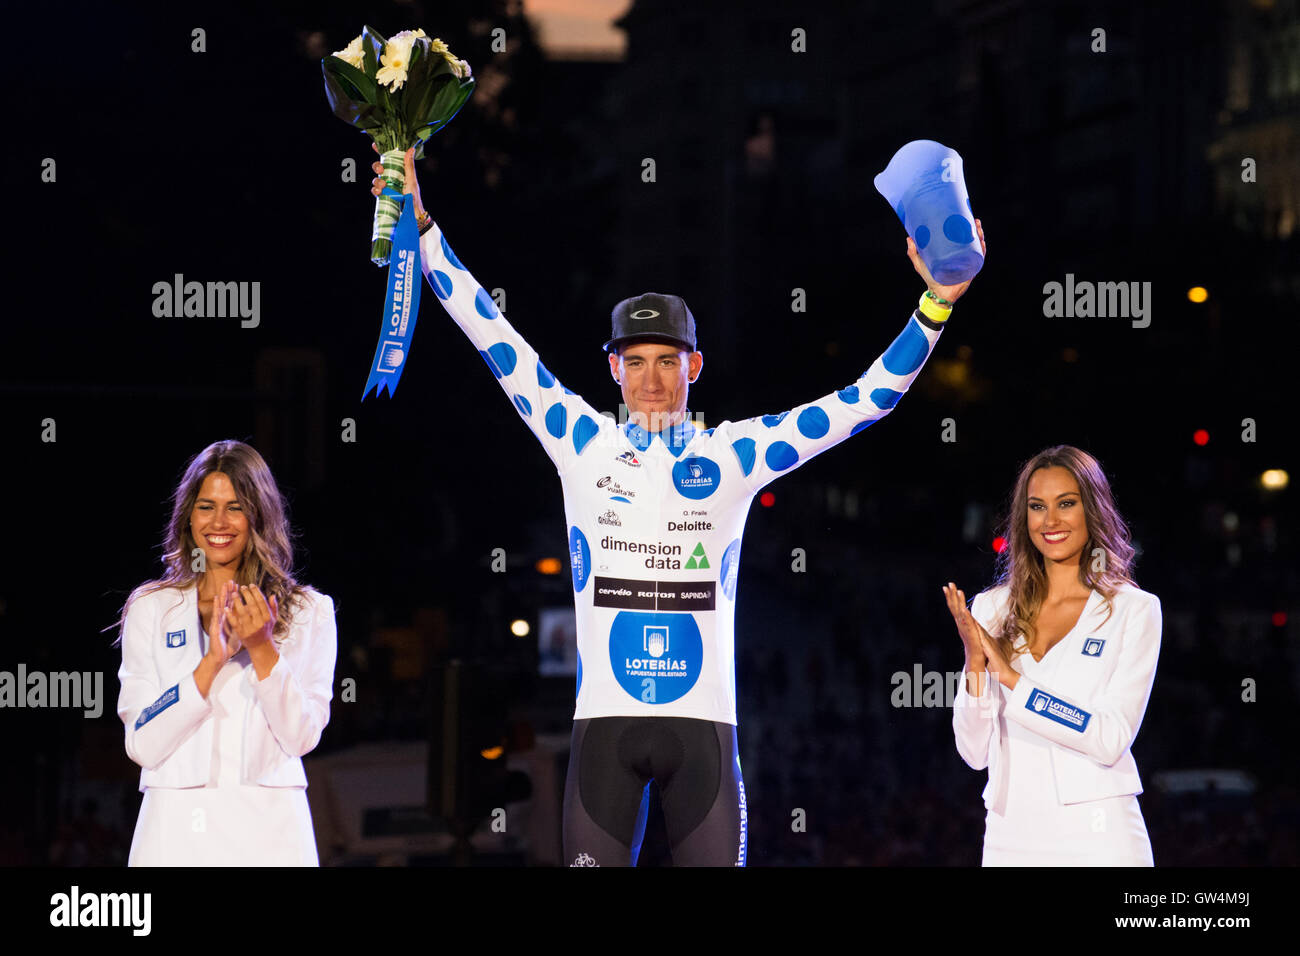 Madrid, Spain. 11th September, 2016. Omar Fraile like winner of Mountain at final podium of 21st stage of cycling - Stock Image